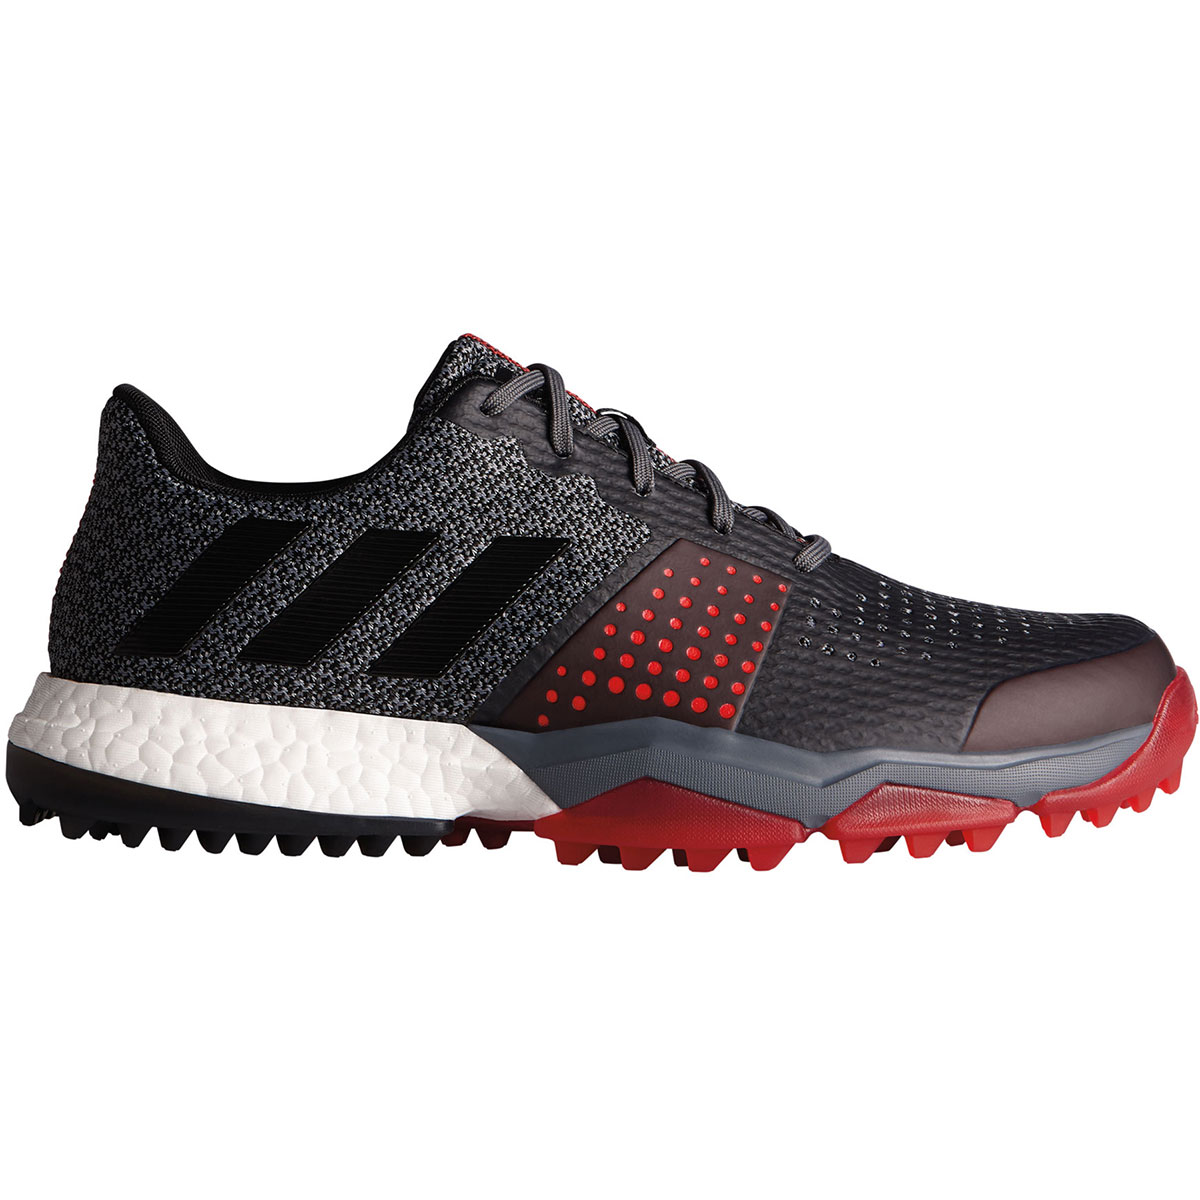 innovative design 5332c 7d956 ... Adidas Adipower Spt Boost 3 S8 ...